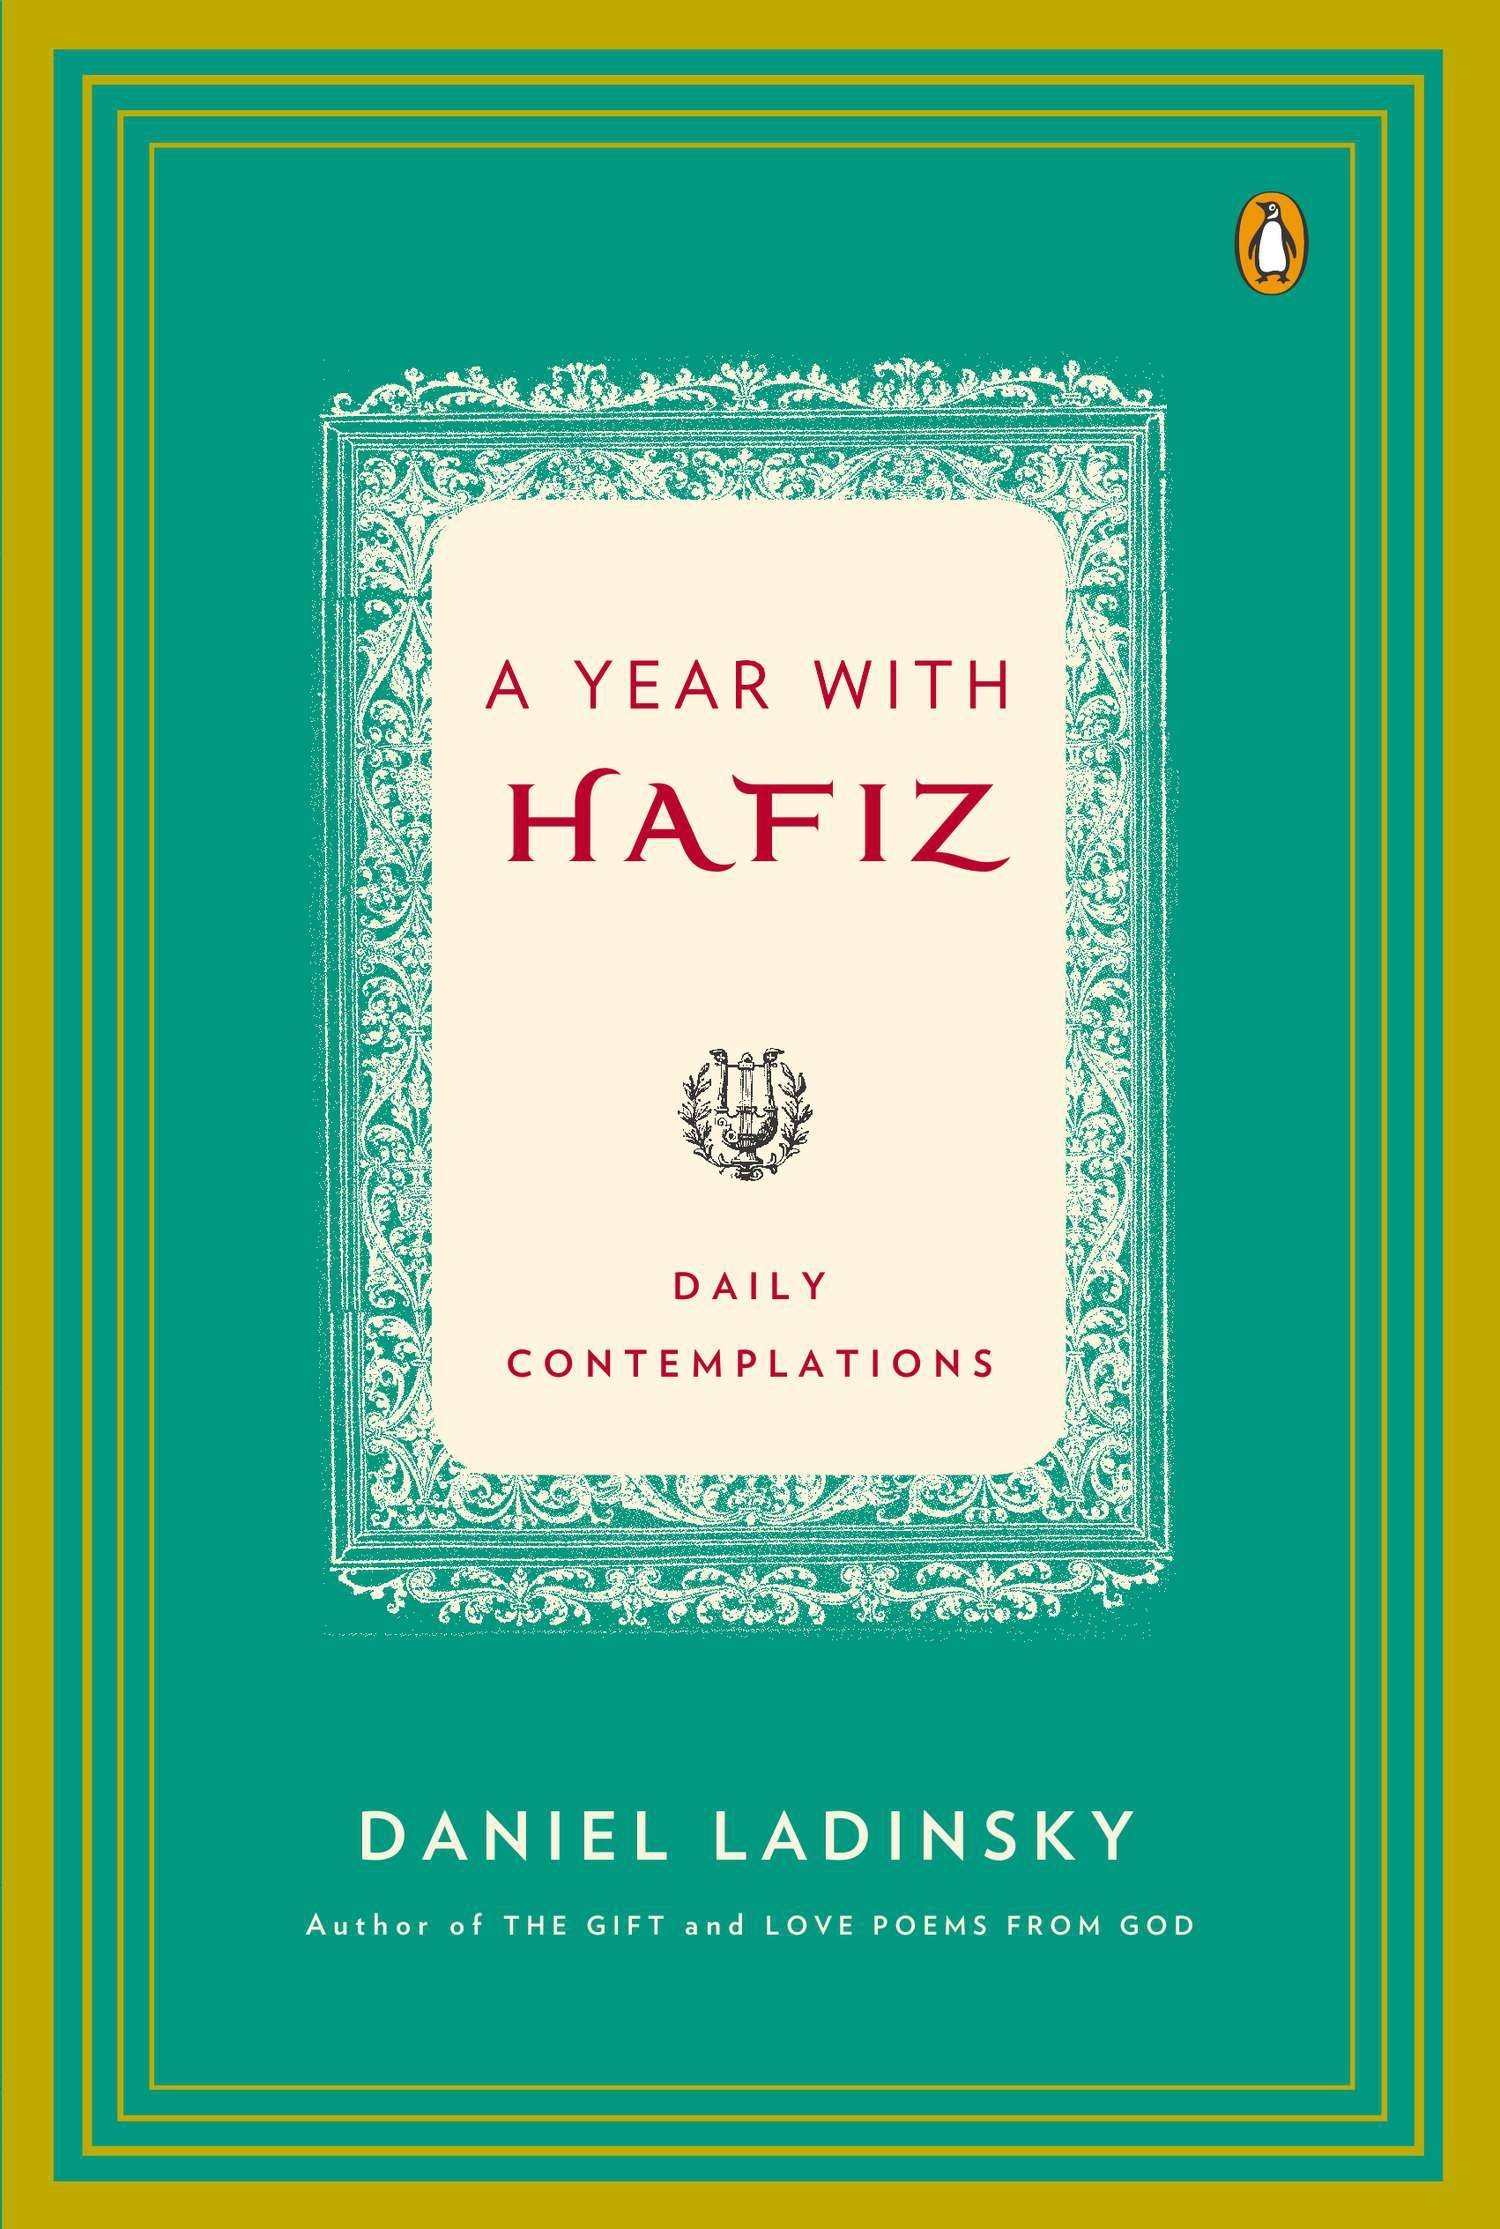 Buy A Year with Hafiz: Daily Contemplations Book Online at Low Prices in  India | A Year with Hafiz: Daily Contemplations Reviews & Ratings -  Amazon.in